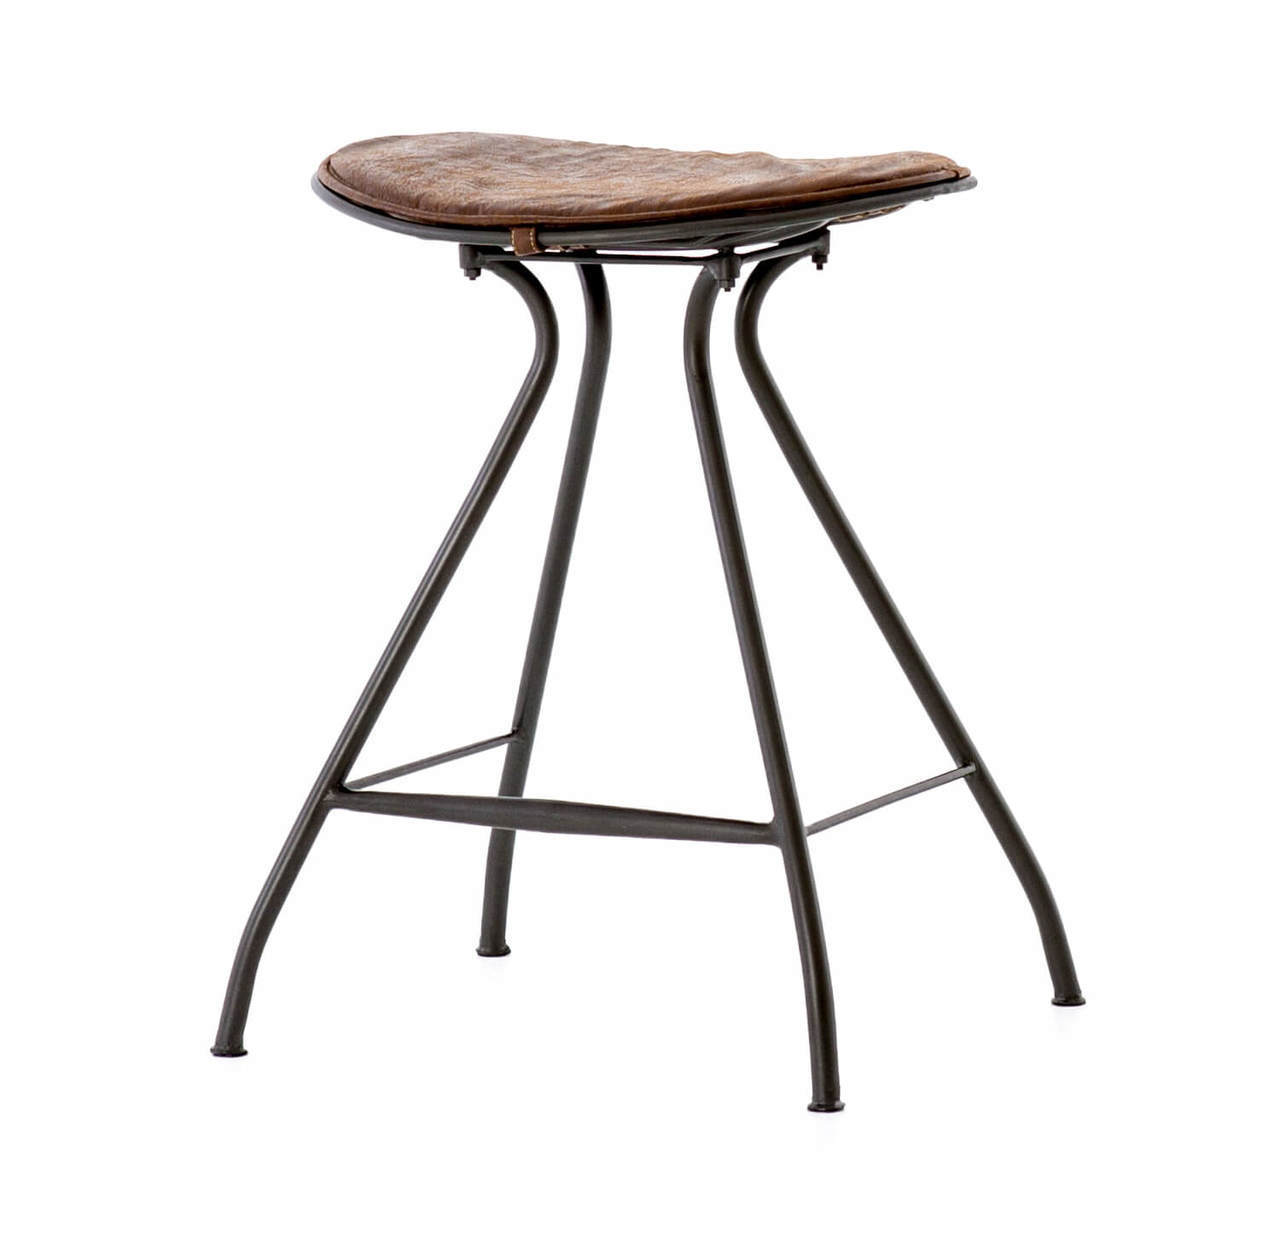 ryder saddle vintage leather iron counter stool zin home irck prm small accent table shallow console cabinet mirrored lamp light wood black pedestal side aluminum legs hexagon